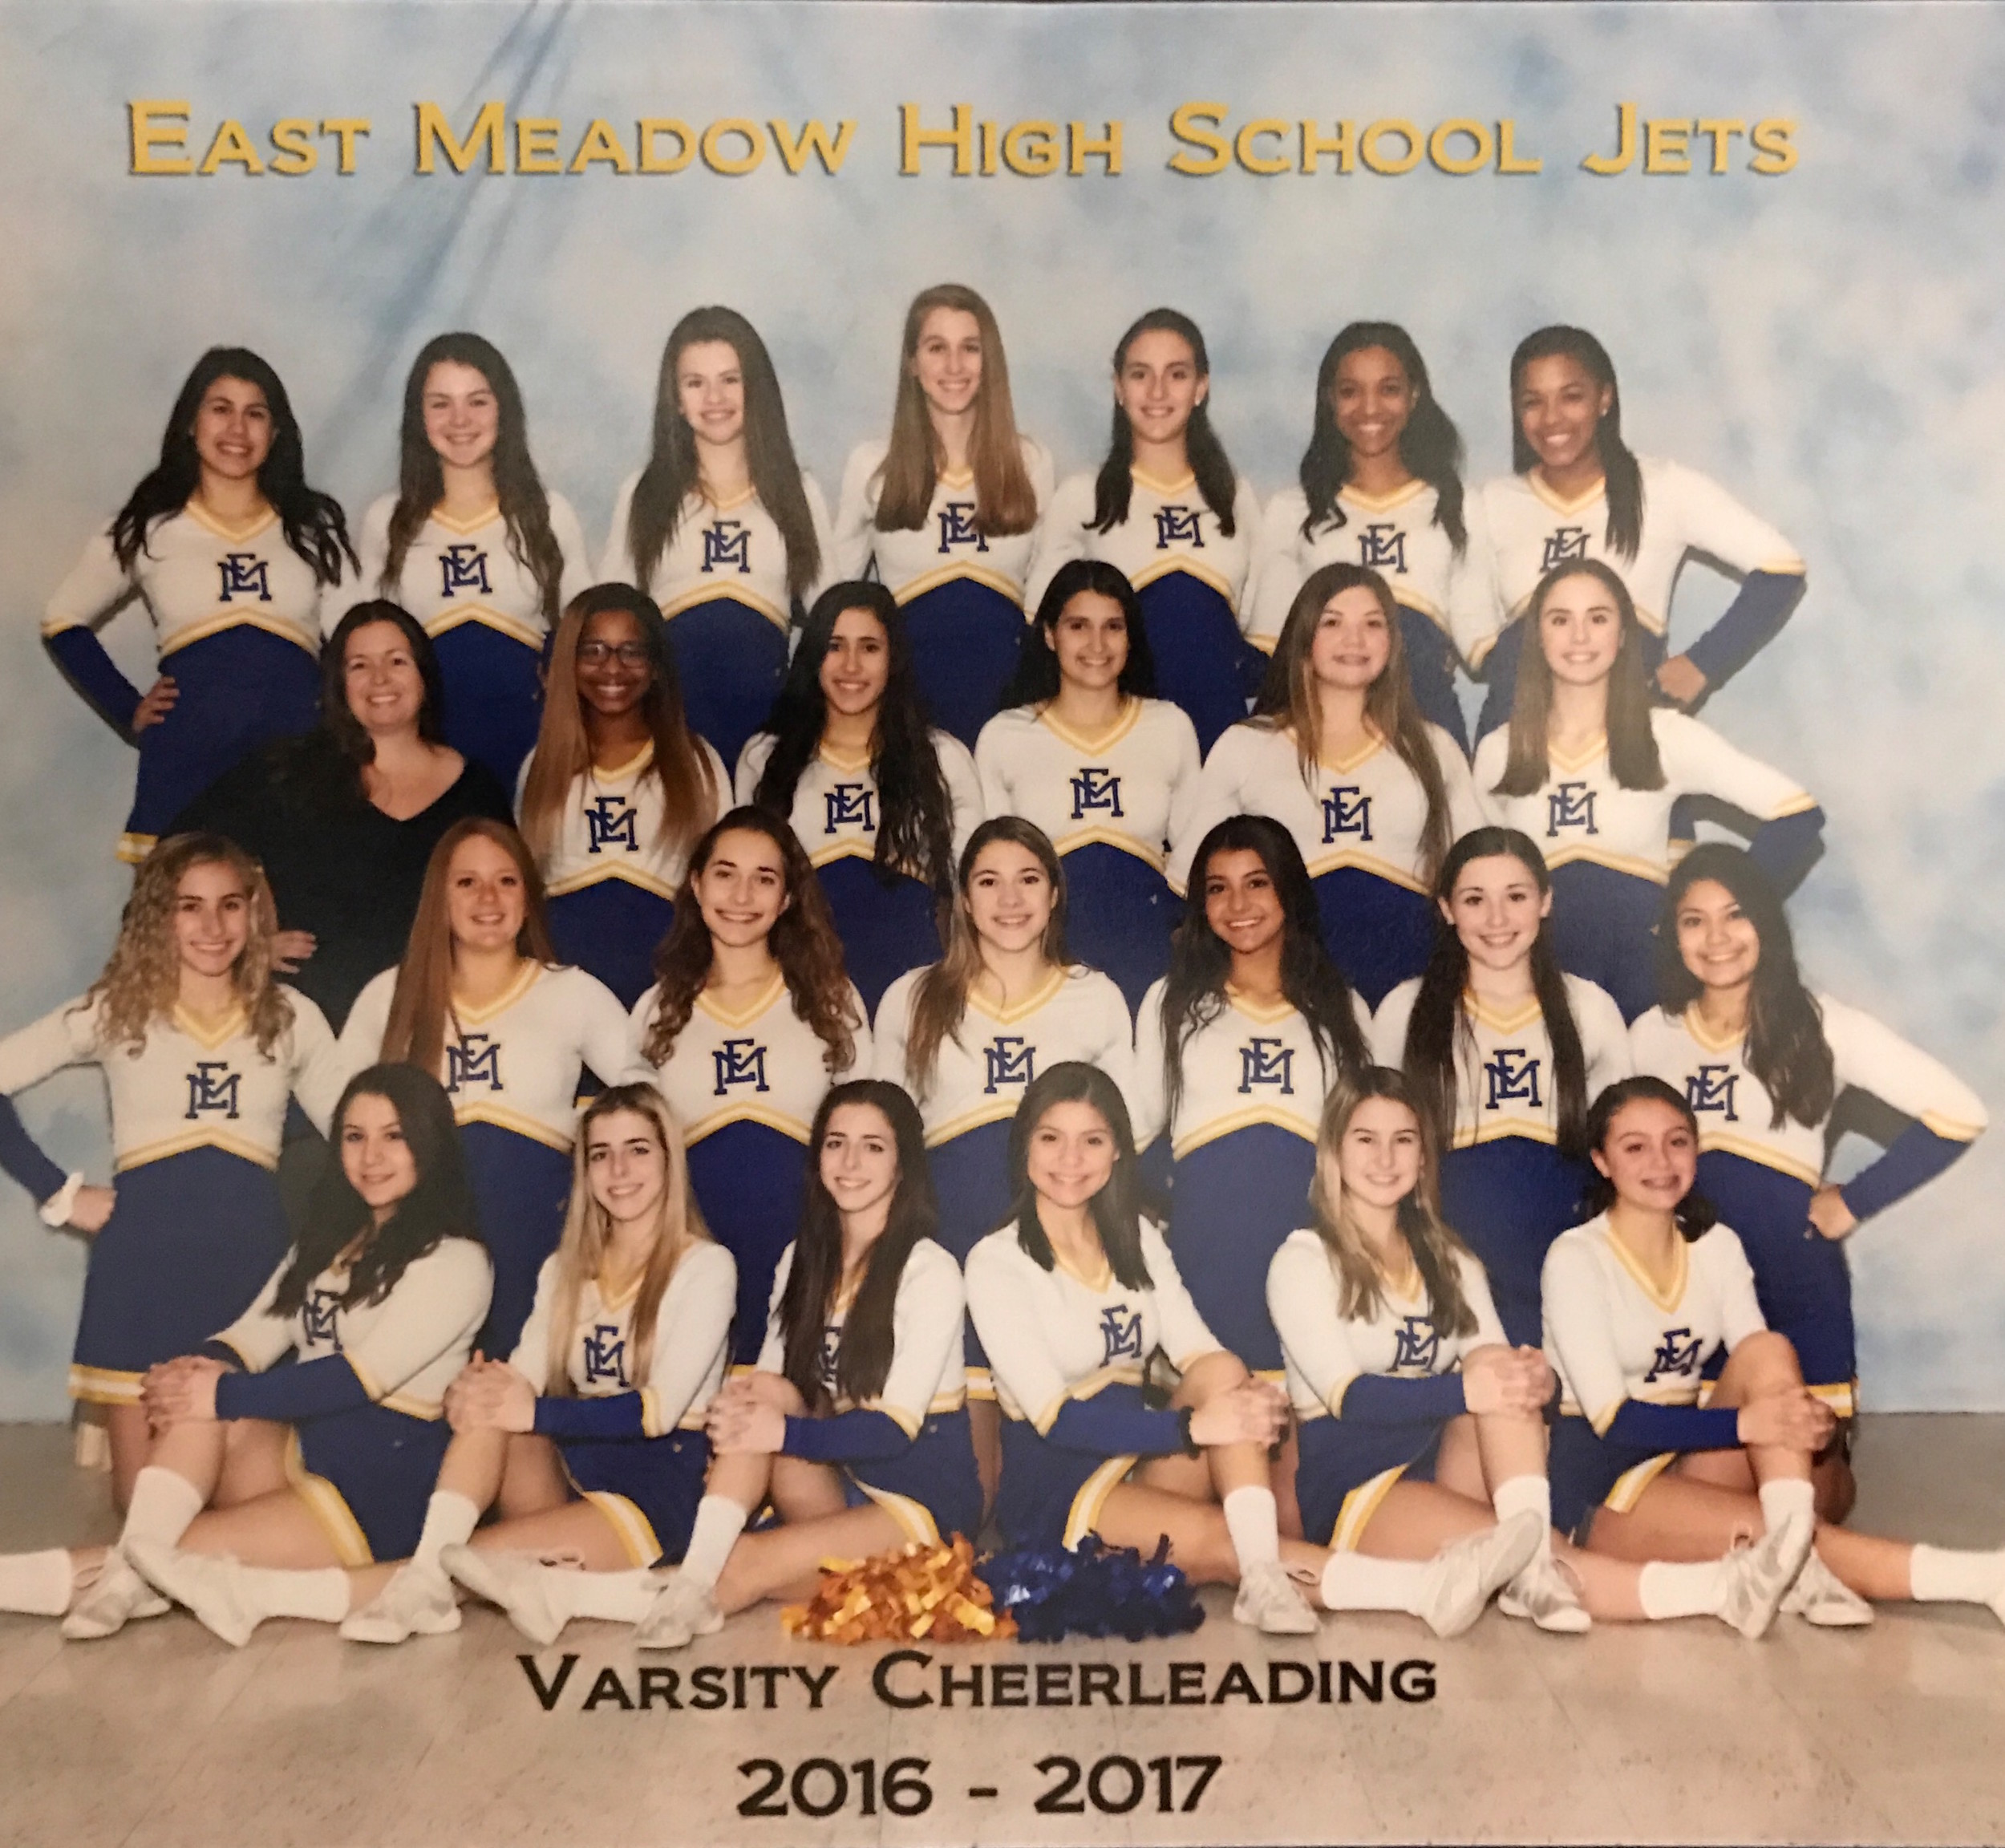 The East Meadow High School's varsity cheerleading team, 2016-17.